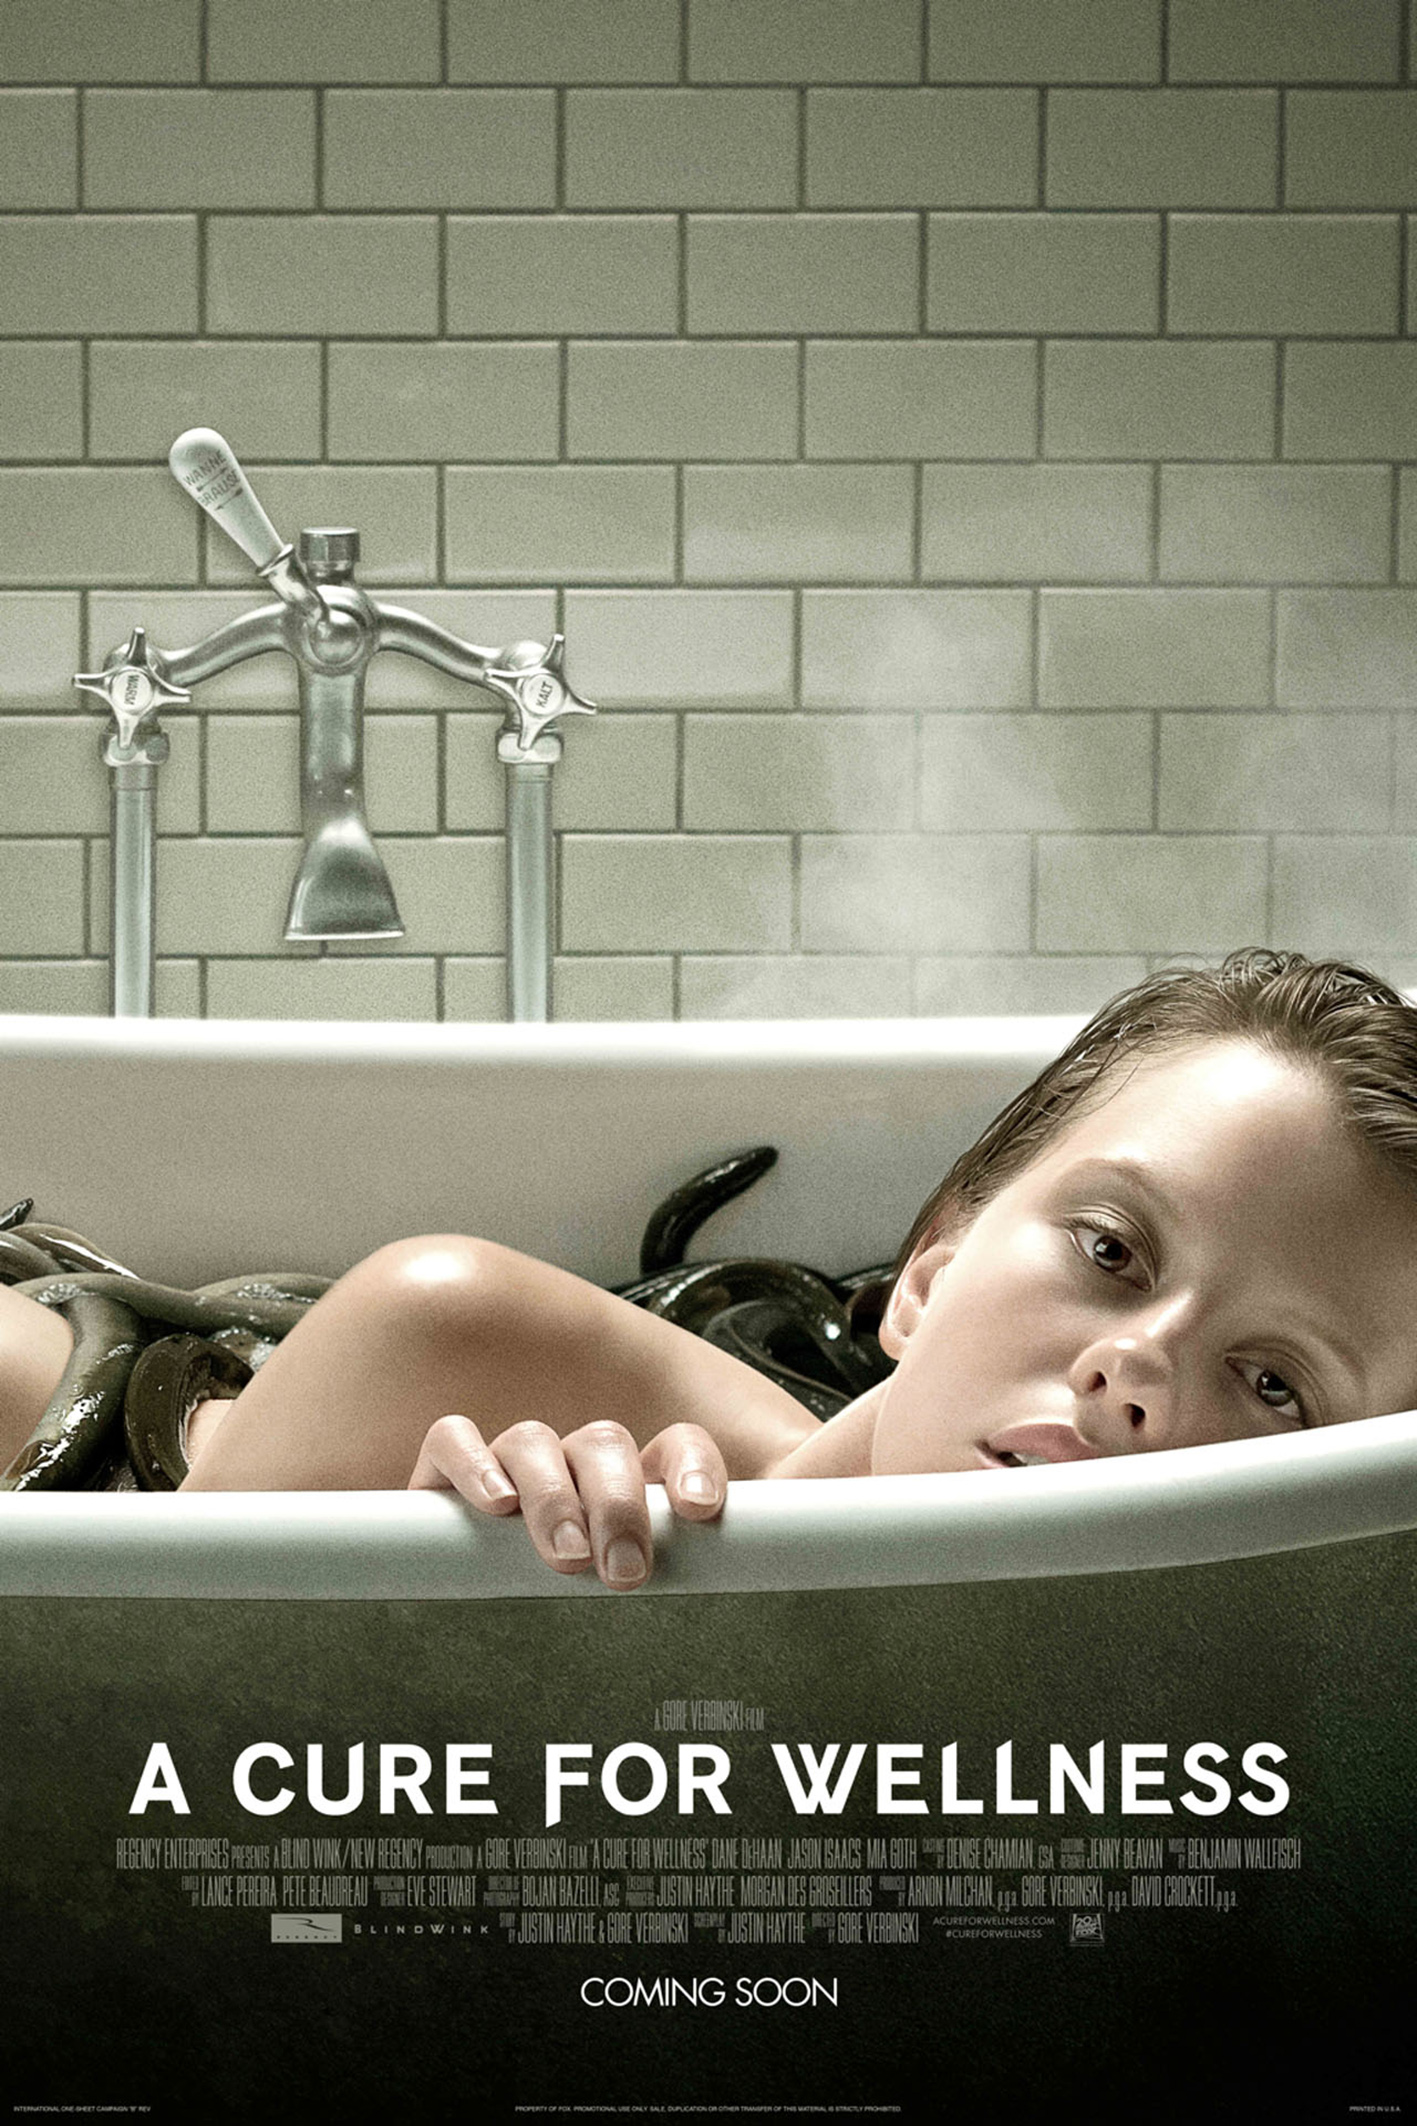 A Cure For Wellness [2017 USA & Germany Movie] Fantasy, Horror, Sci Fi, Thriller